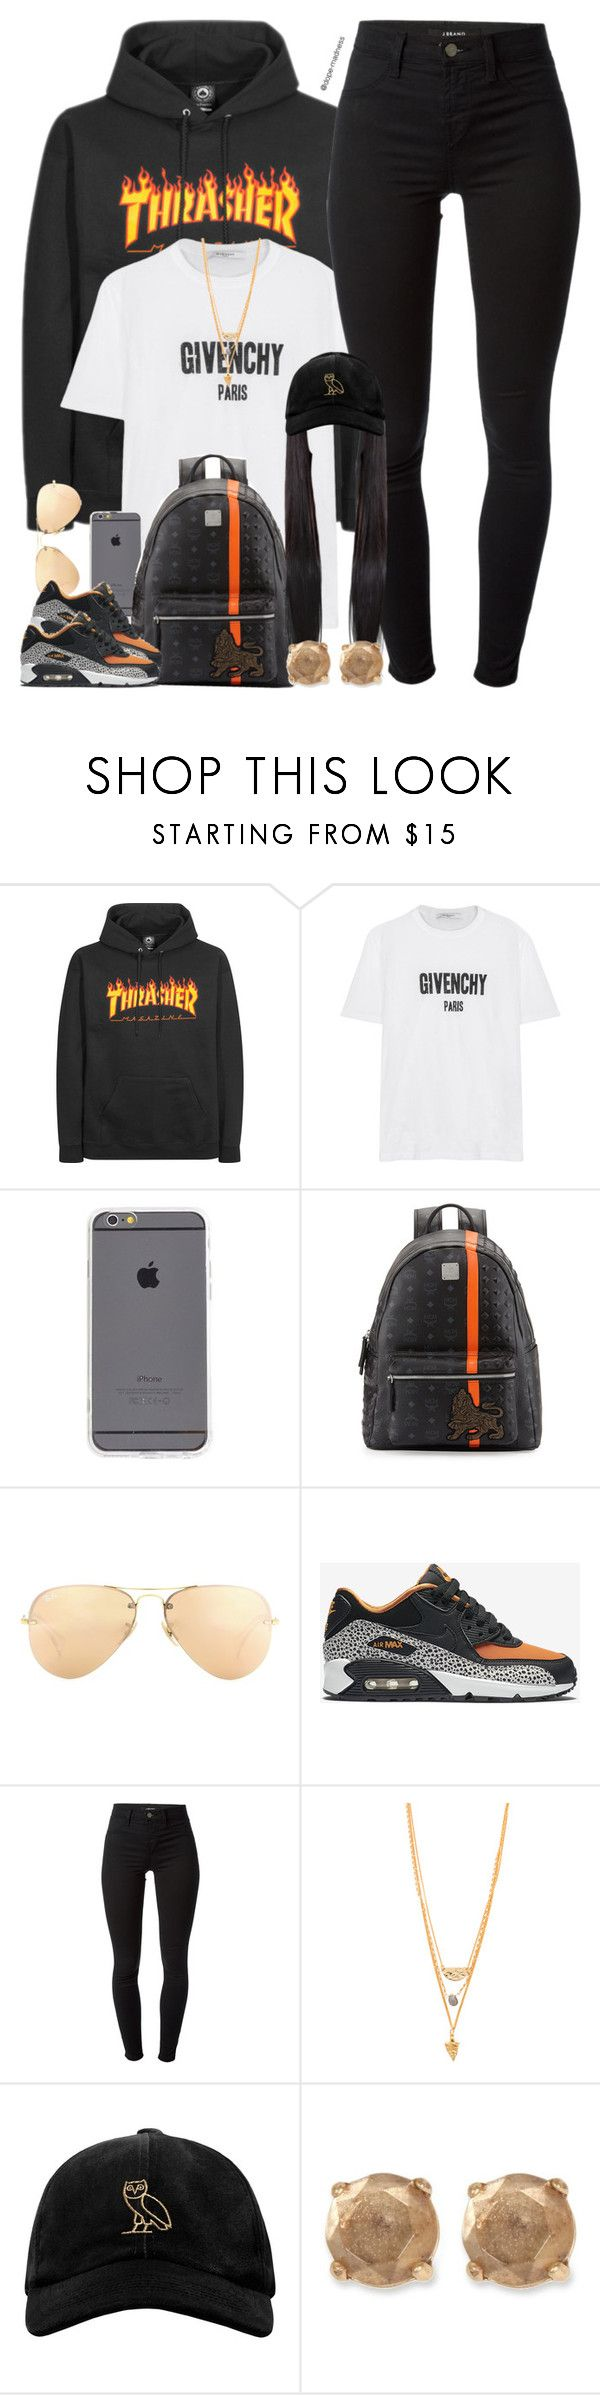 """T H R A S H E R"" by urban-stylefashion ❤ liked on Polyvore featuring Givenchy, MCM, Ray-Ban, NIKE, J Brand, A.V. Max, October's Very Own and Lucky Brand"